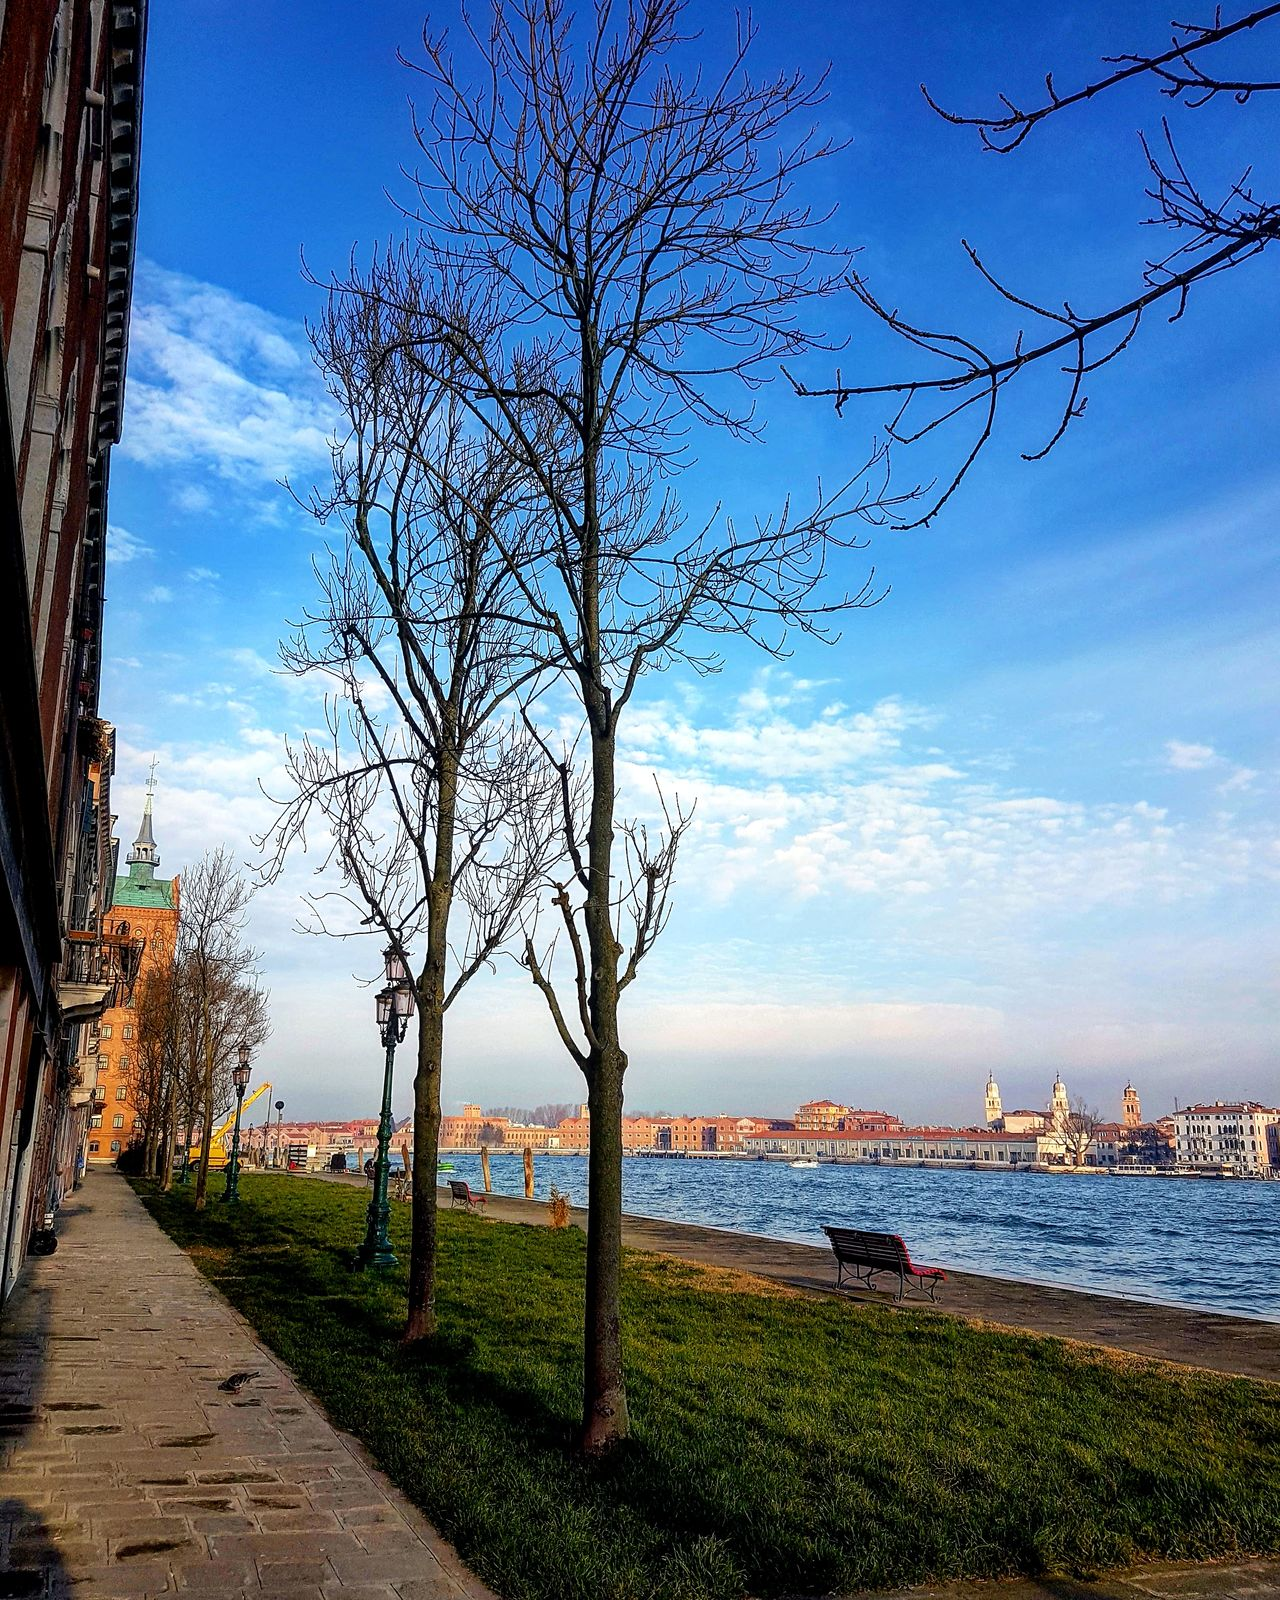 Isola della Giudecca, Venezia, Italy. Venice Italy Venice, Italy Venicelife Beauty In Nature Tree Tranquility Day Photo Of The Day Photooftheday City Landscape Blue Sky Beauty In Nature Spring Is In The Air Outdoors Amazing View Enjoying The View View Skyview Trees And Sky No People Nature Landscape_Collection Beautiful Day Sky Collection EyeEmNewHere